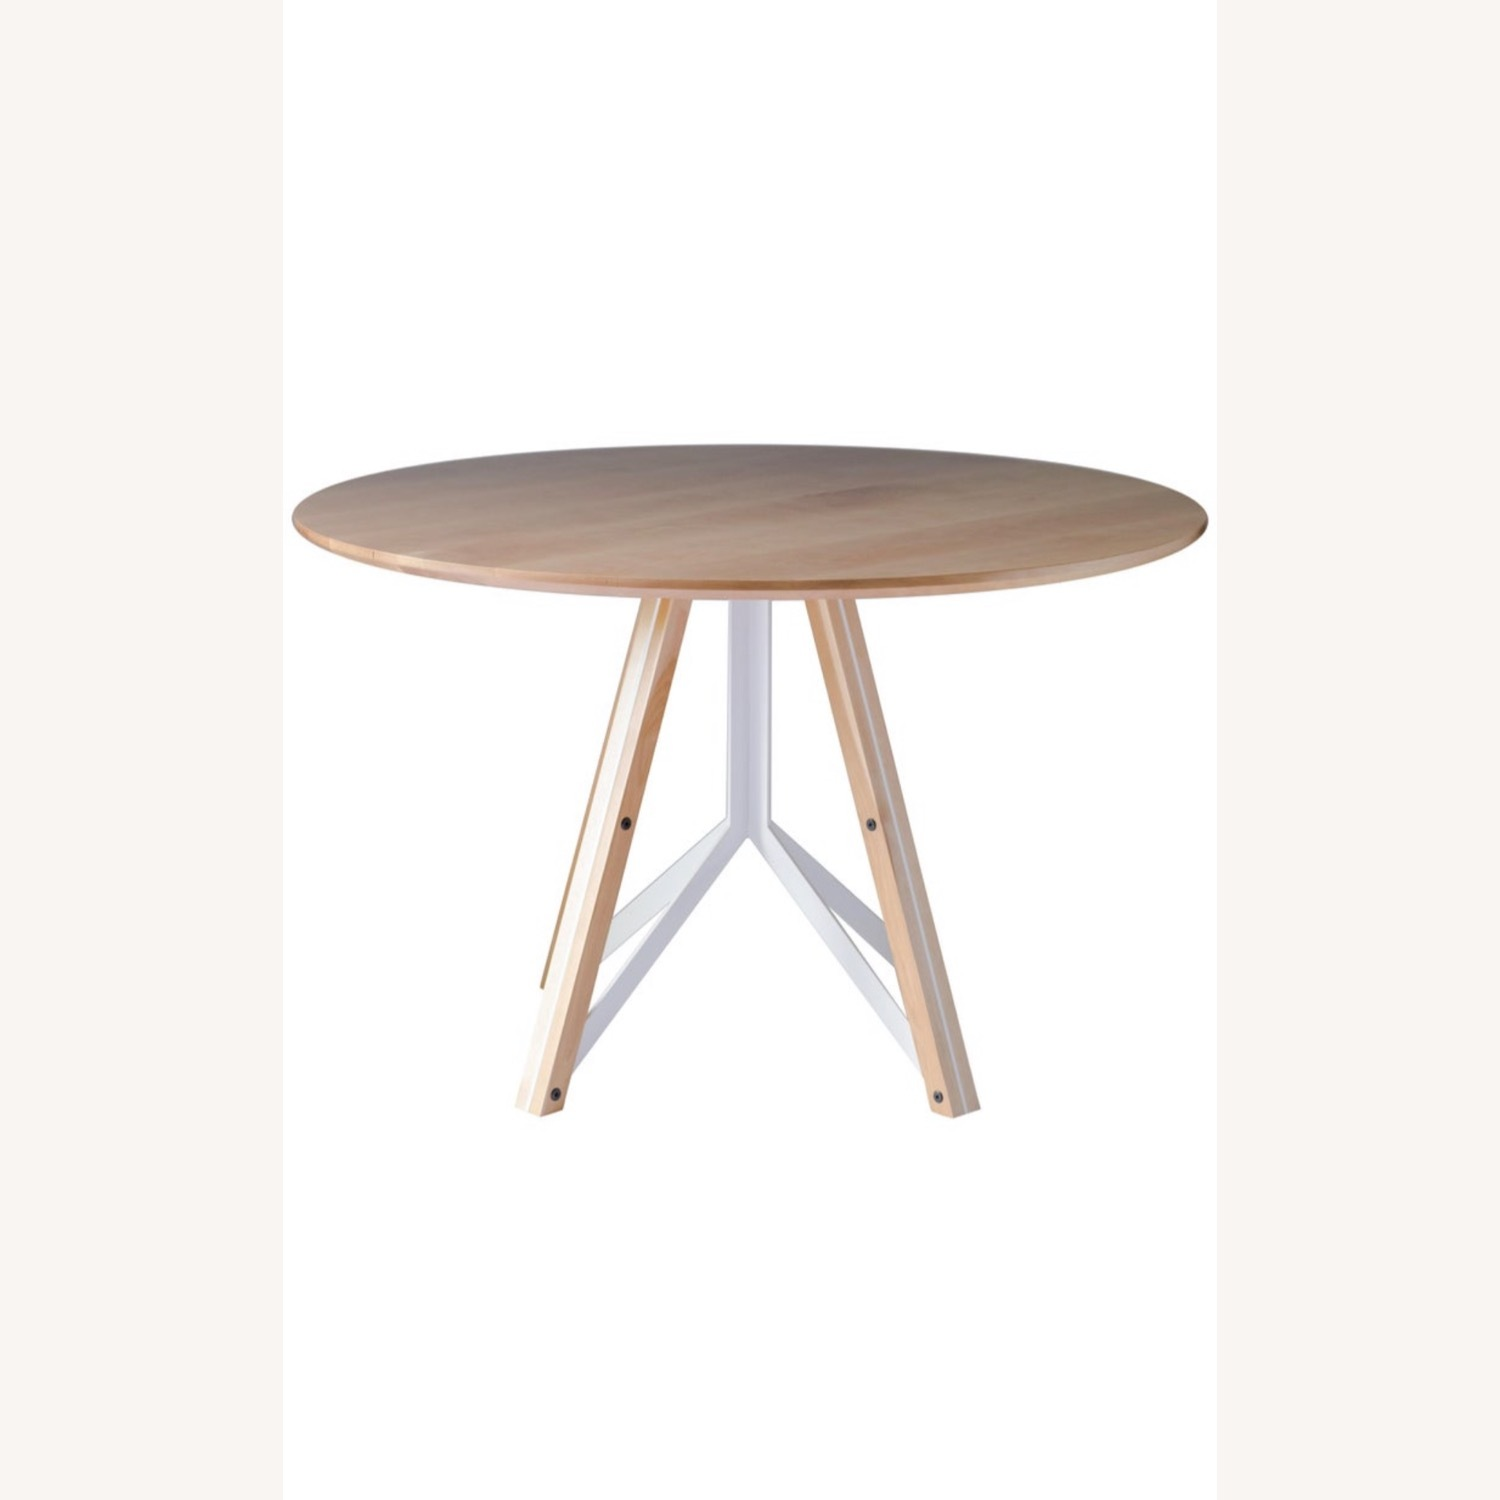 Birch Wood Round Dining Table 60 - image-1